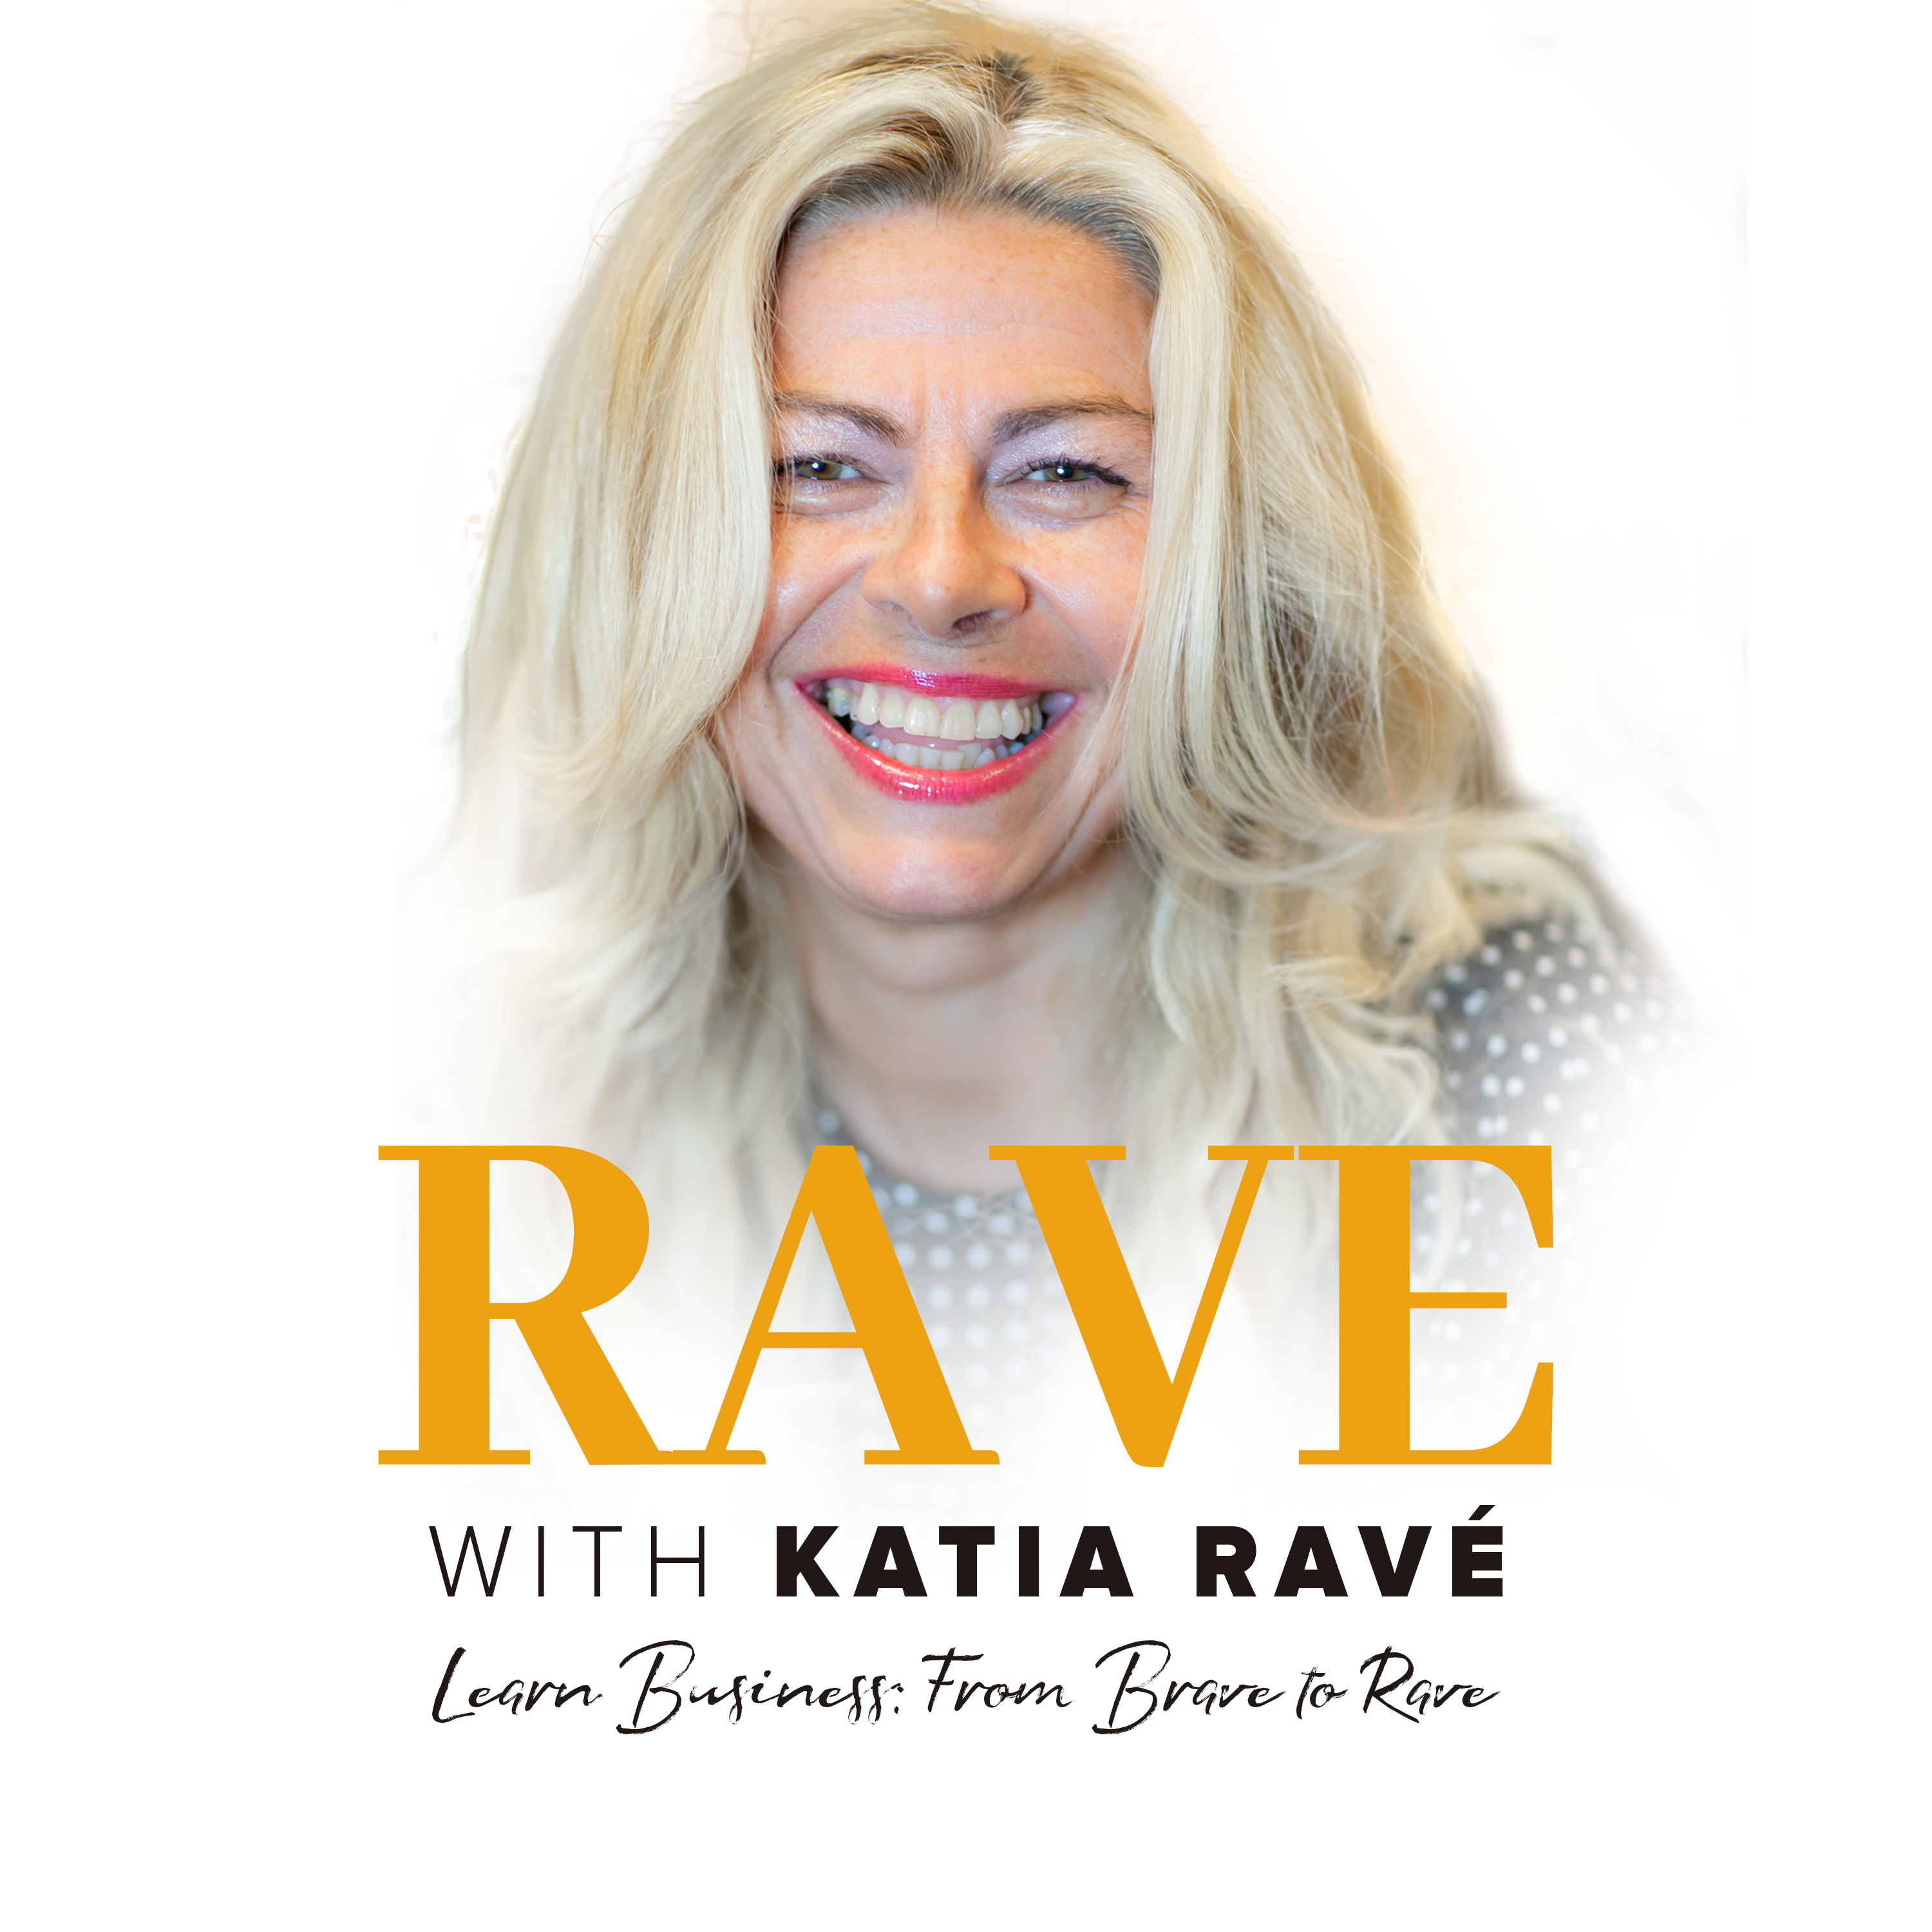 Rave with Katia Ravé